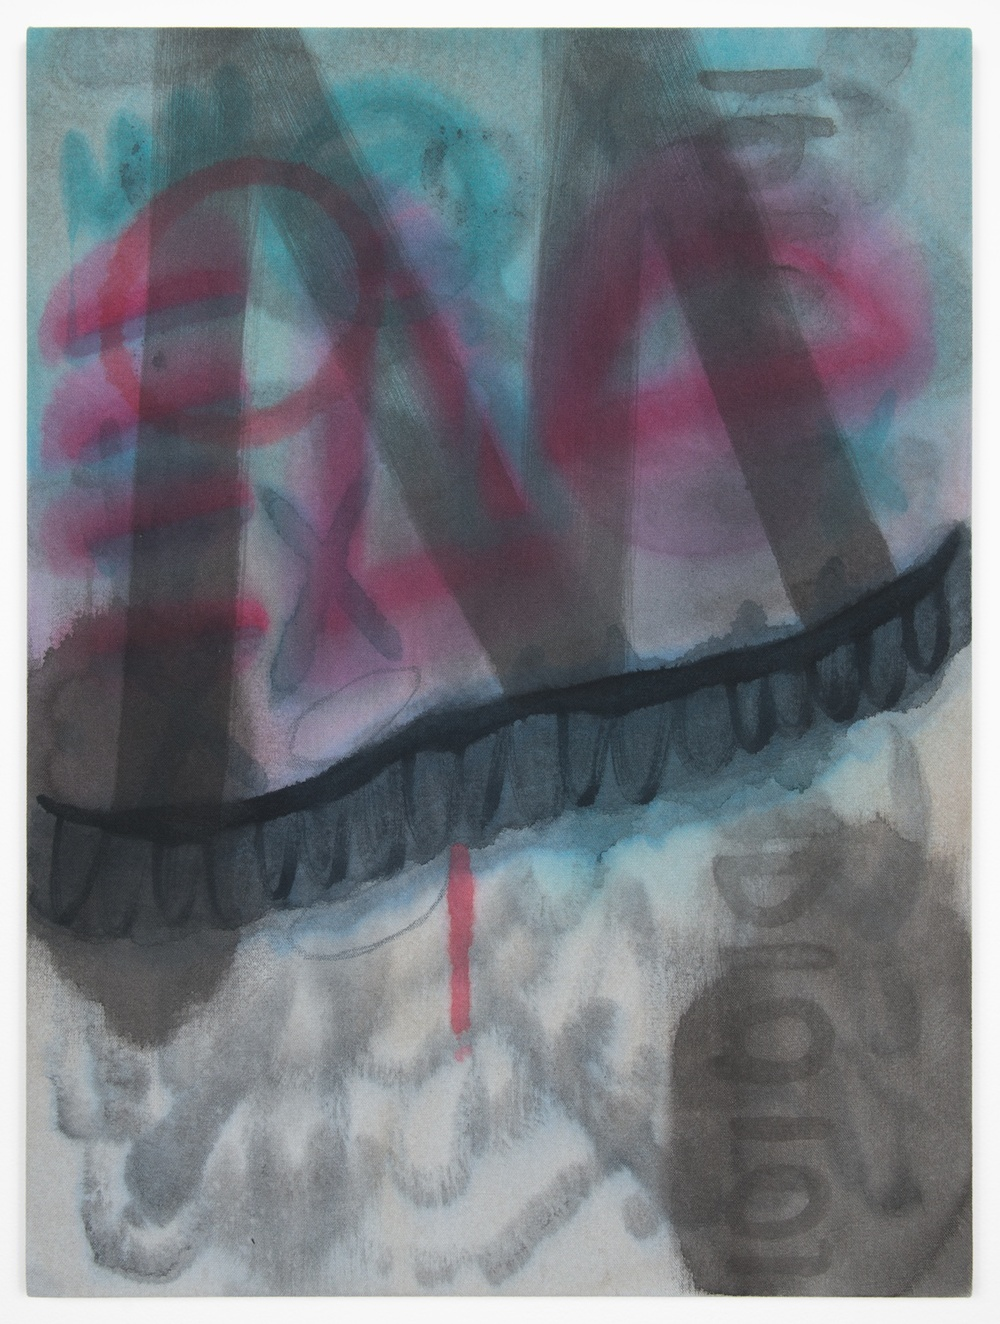 Amanda Ross-Ho  Untitled Painting (WHO NEEDS SKOOL)  2013 Acrylic and oil pastel on dyed canvas 24h x 18w in ARH040